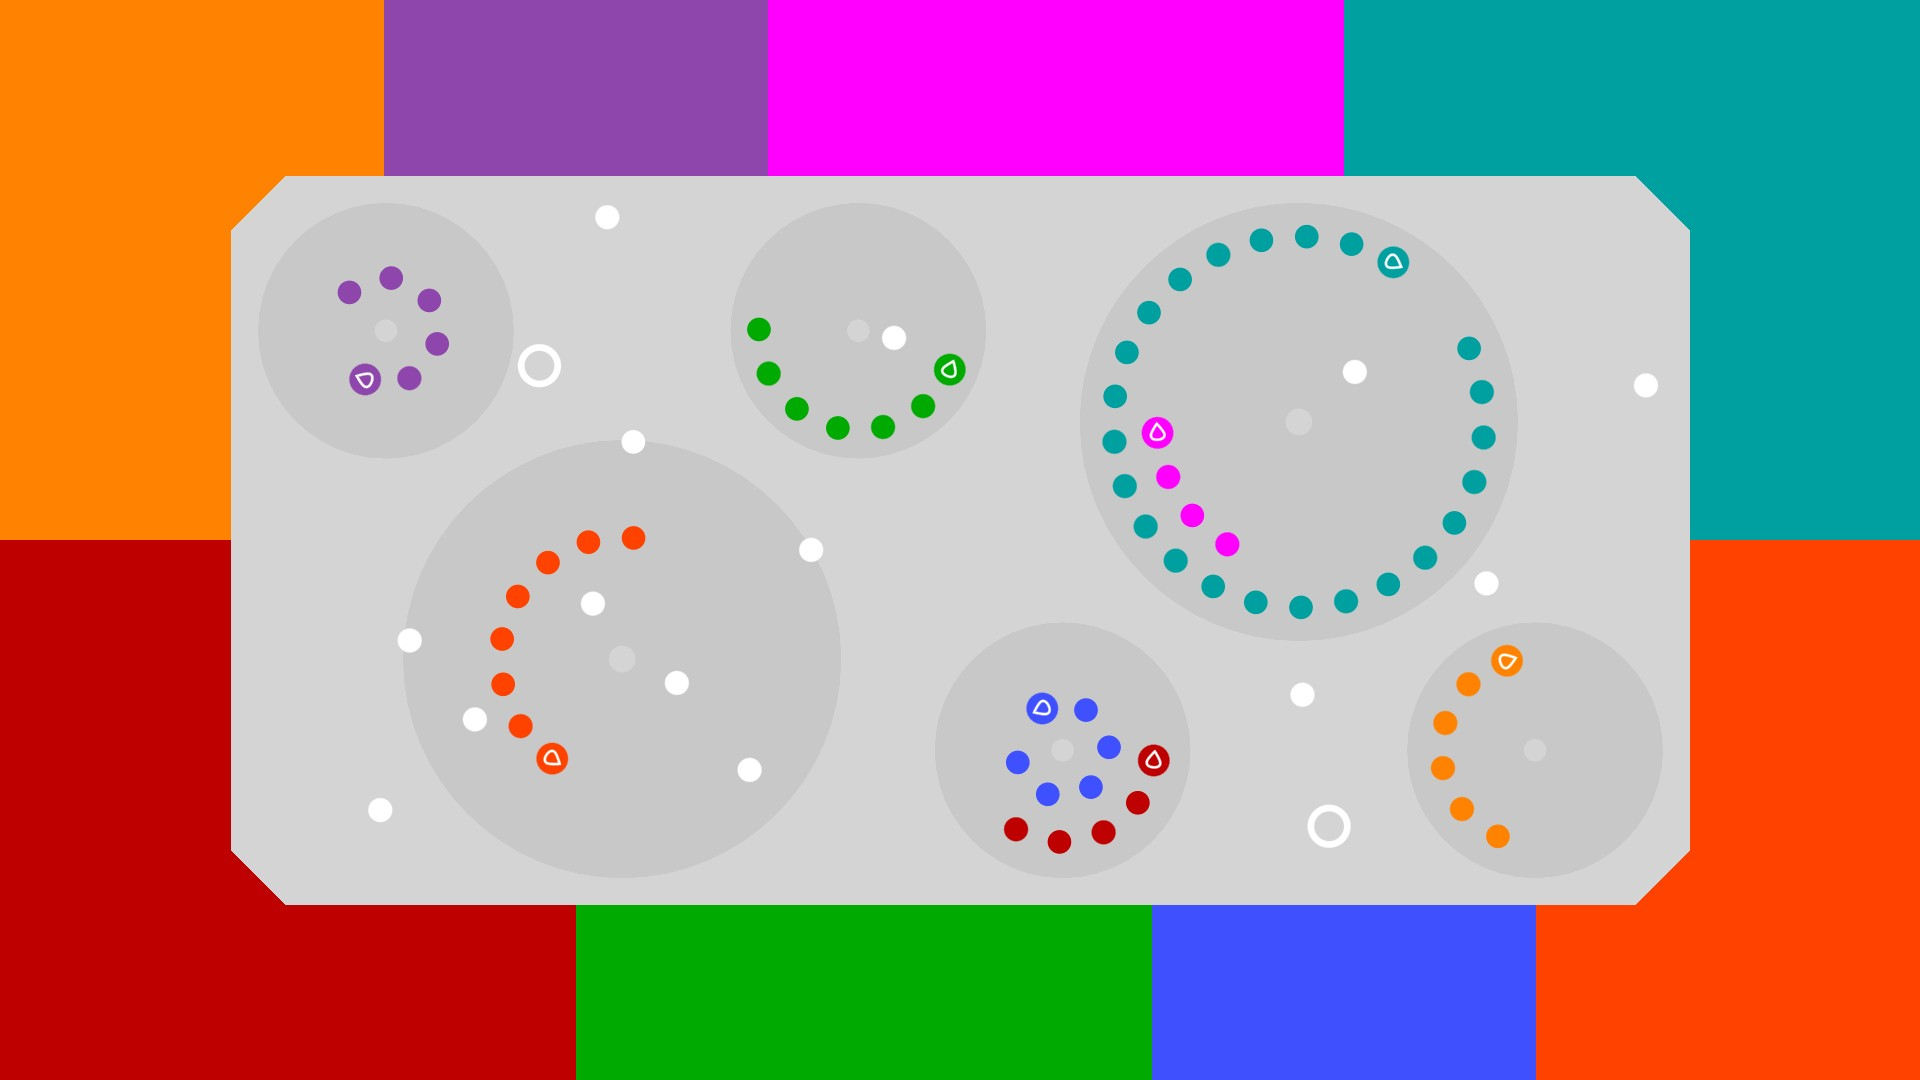 12 orbits • local multiplayer for 2, 3, 4, 5, 6... 12 players